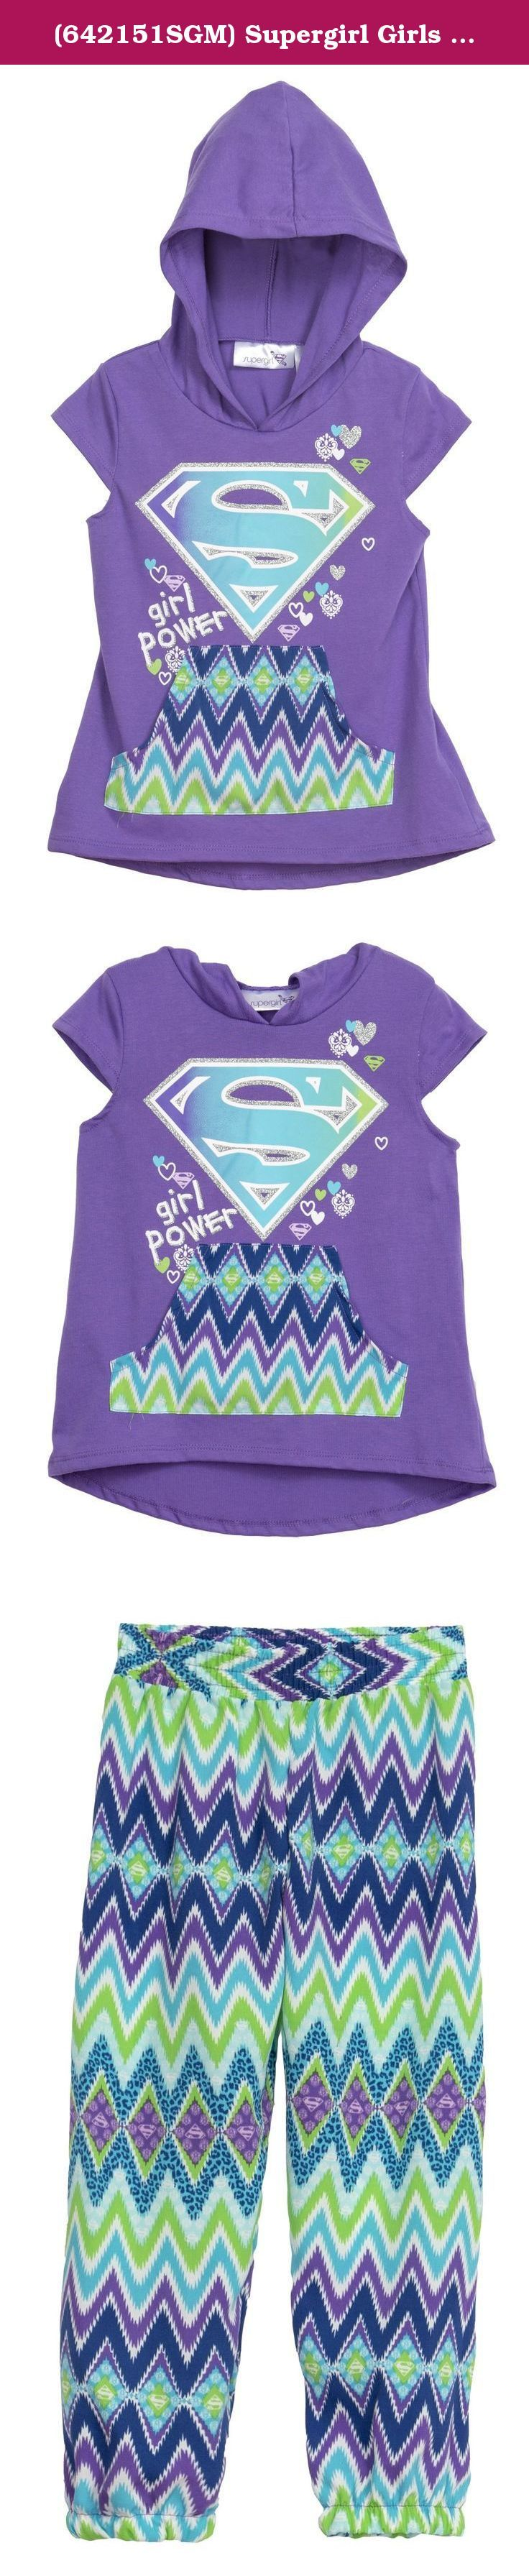 (642151SGM) Supergirl Girls Jogger and Tee 2 Piece Set in Violet Size: 6/6X. GREAT FABRIC - Top is made from 60% Cotton and 40% Polyester and bottoms are a 100% Polyester Chalis for a soft, comfortable fit, durability and easy care. QUALITY SCREEN PRINT - Large, bright screenprint made to last. TREND RIGHT - Mix a good looking pants set with your daughters favorite character and you have a winner!. Made in the Philippines. Machine Wash.